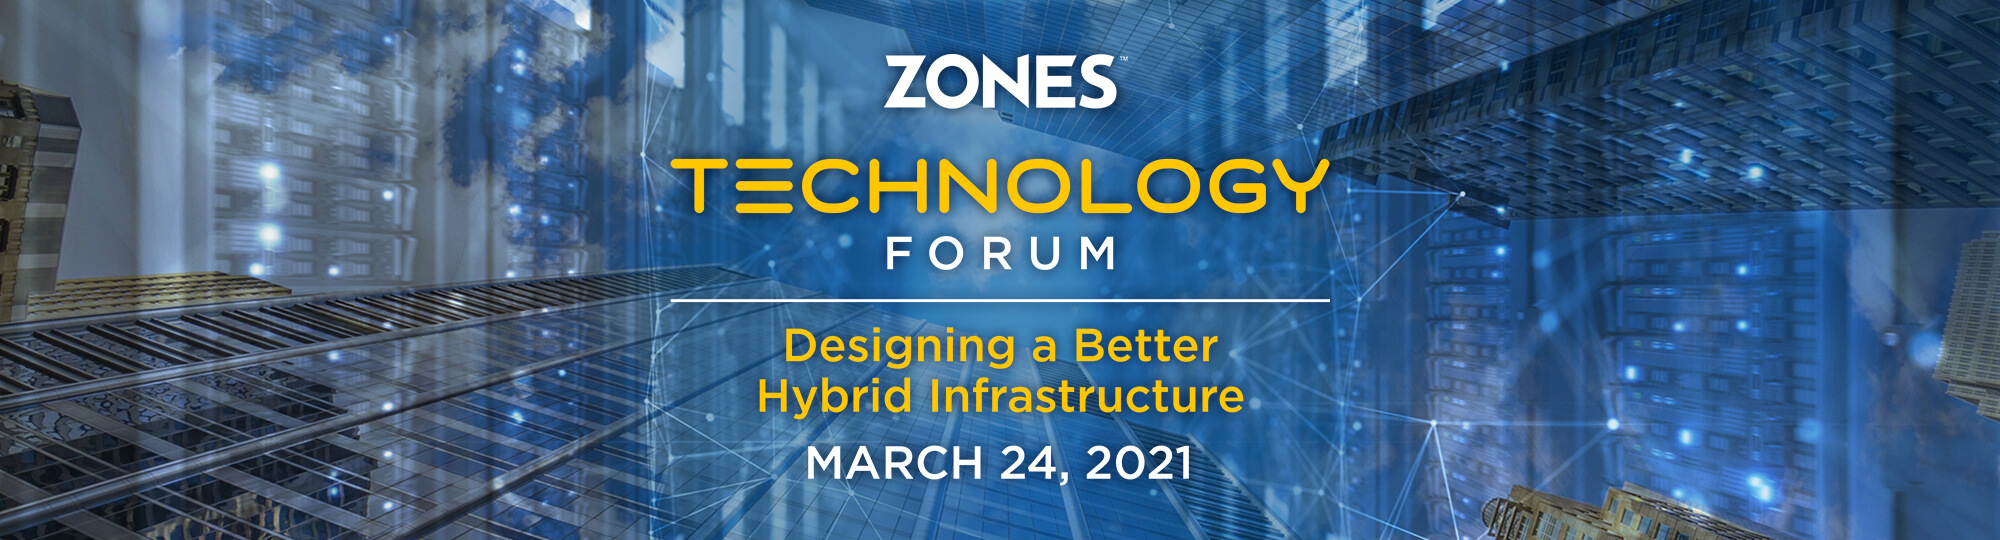 Zones Technology Forum: Designing a Better Hybrid Infrastructure - March 24, 2021